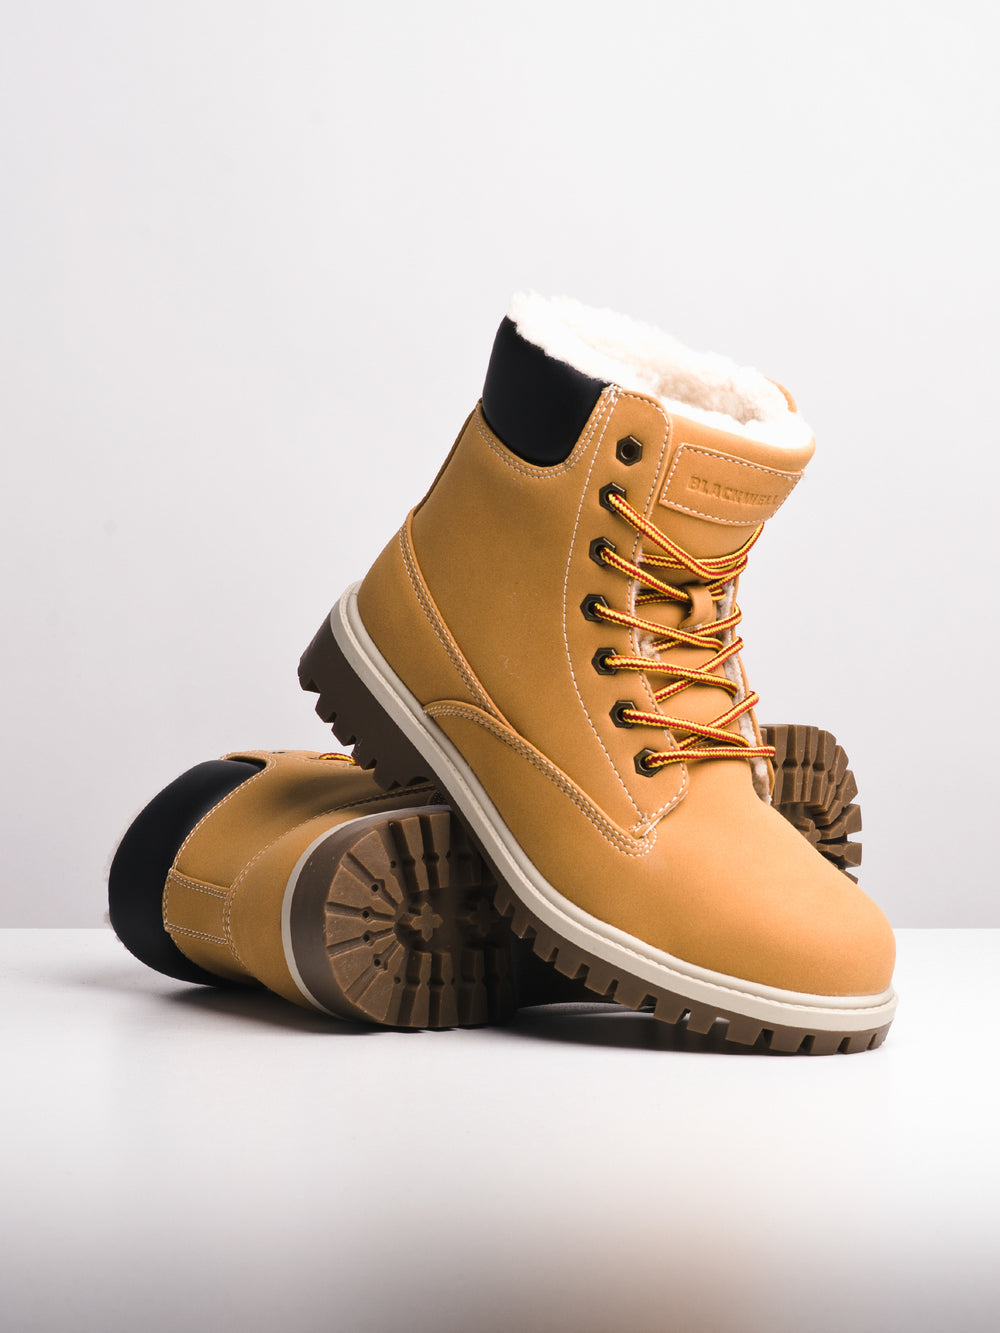 MENS LEE - WHEAT-D5 - CLEARANCE